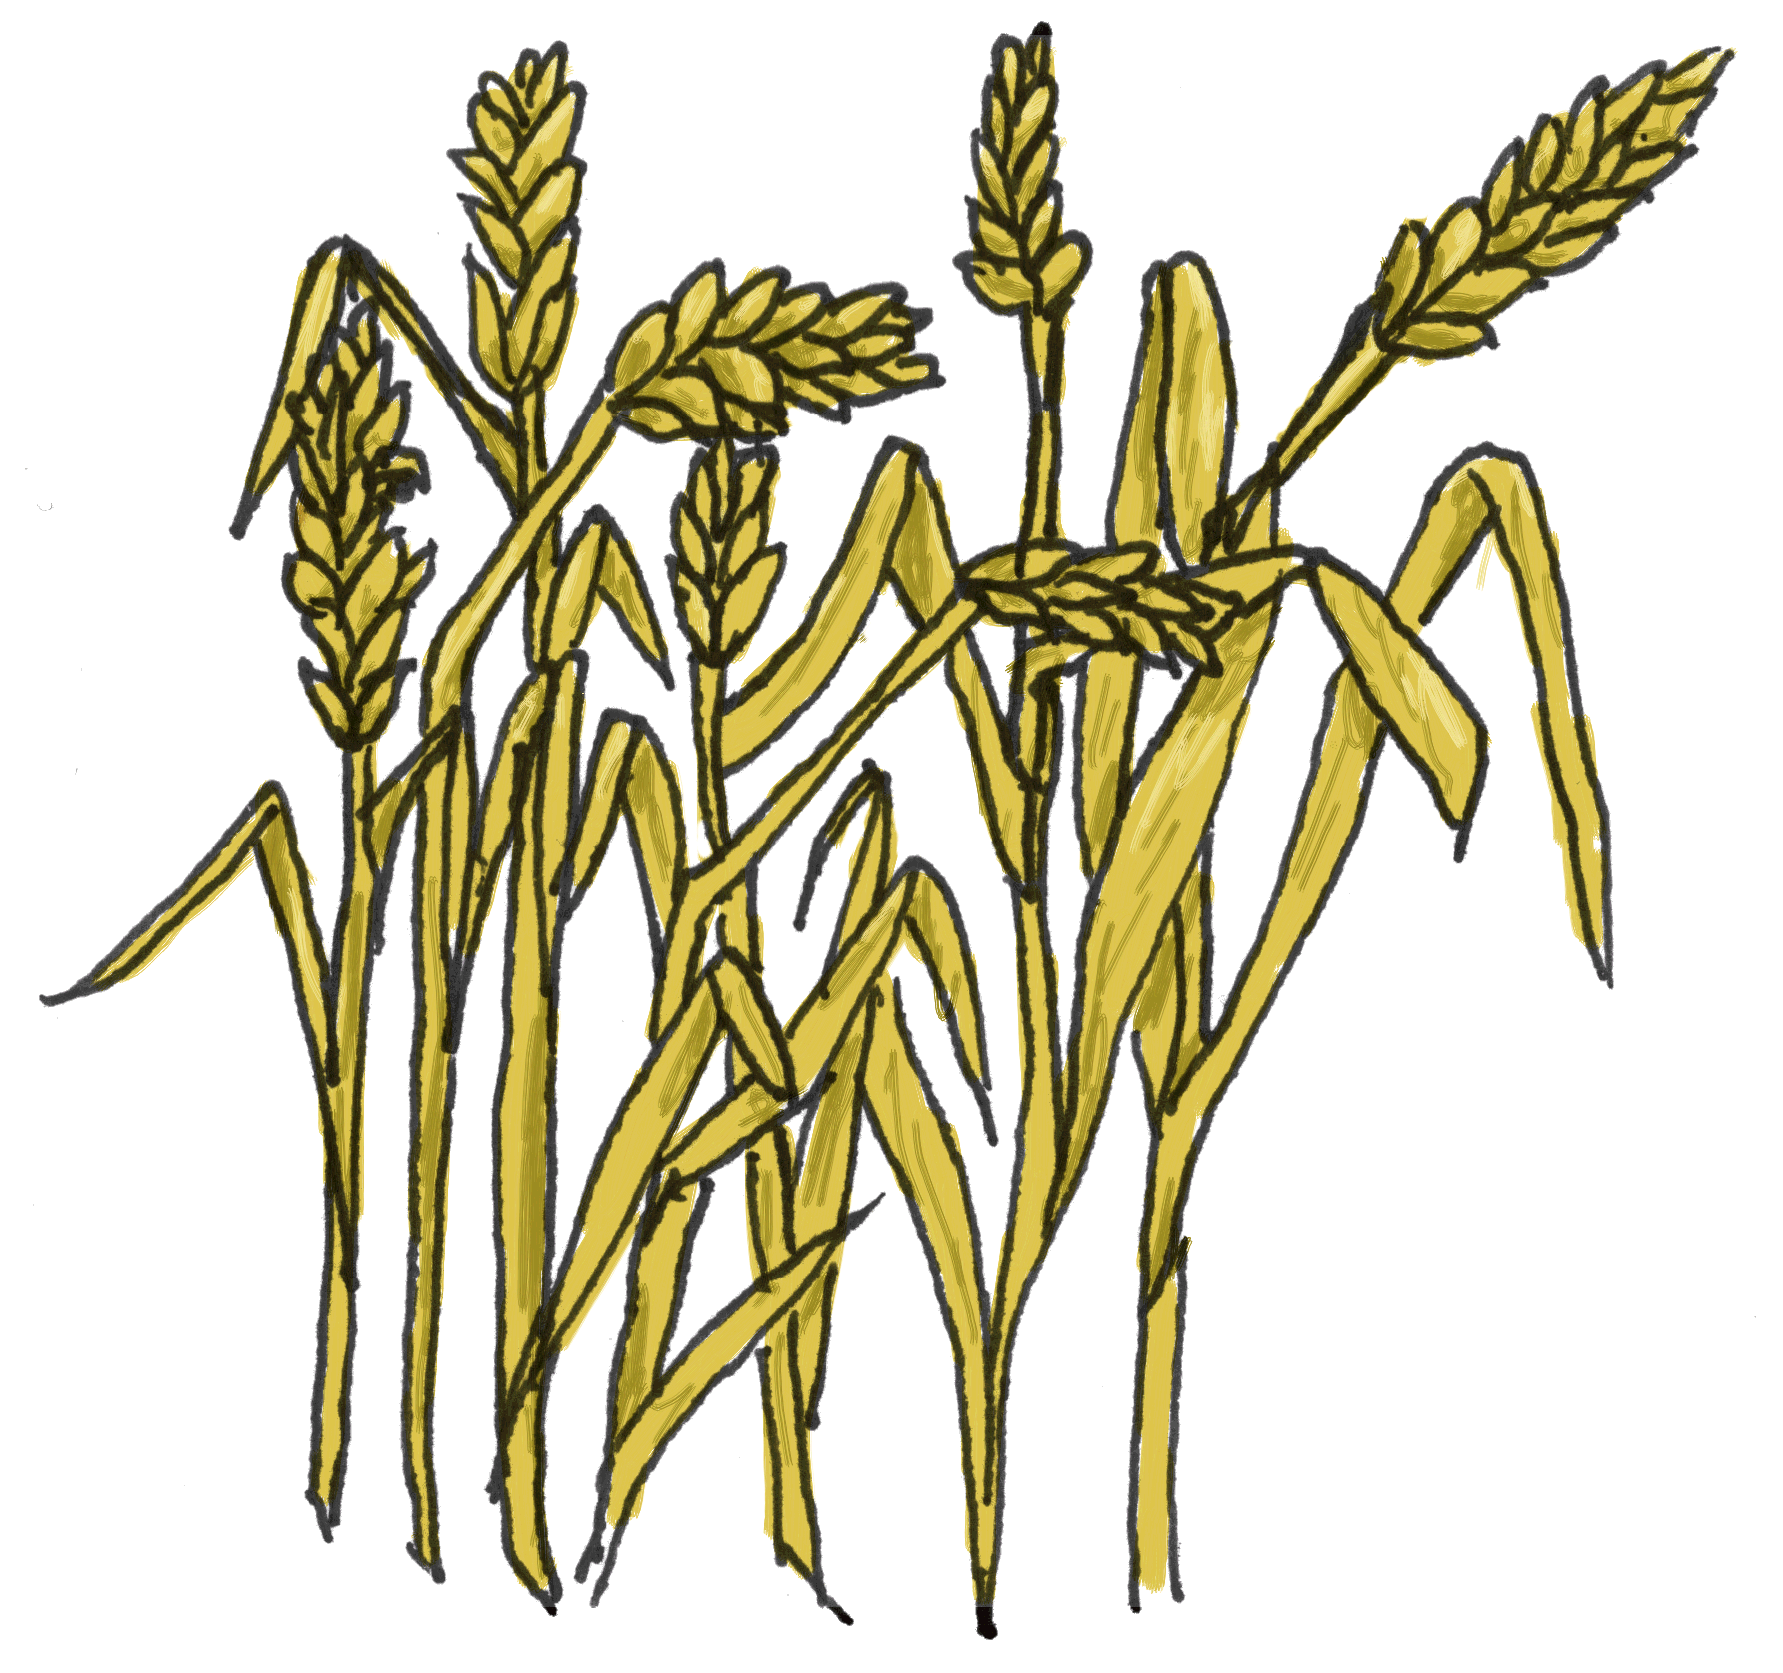 Cornfield drawing barley field. Clipart corn wheat free